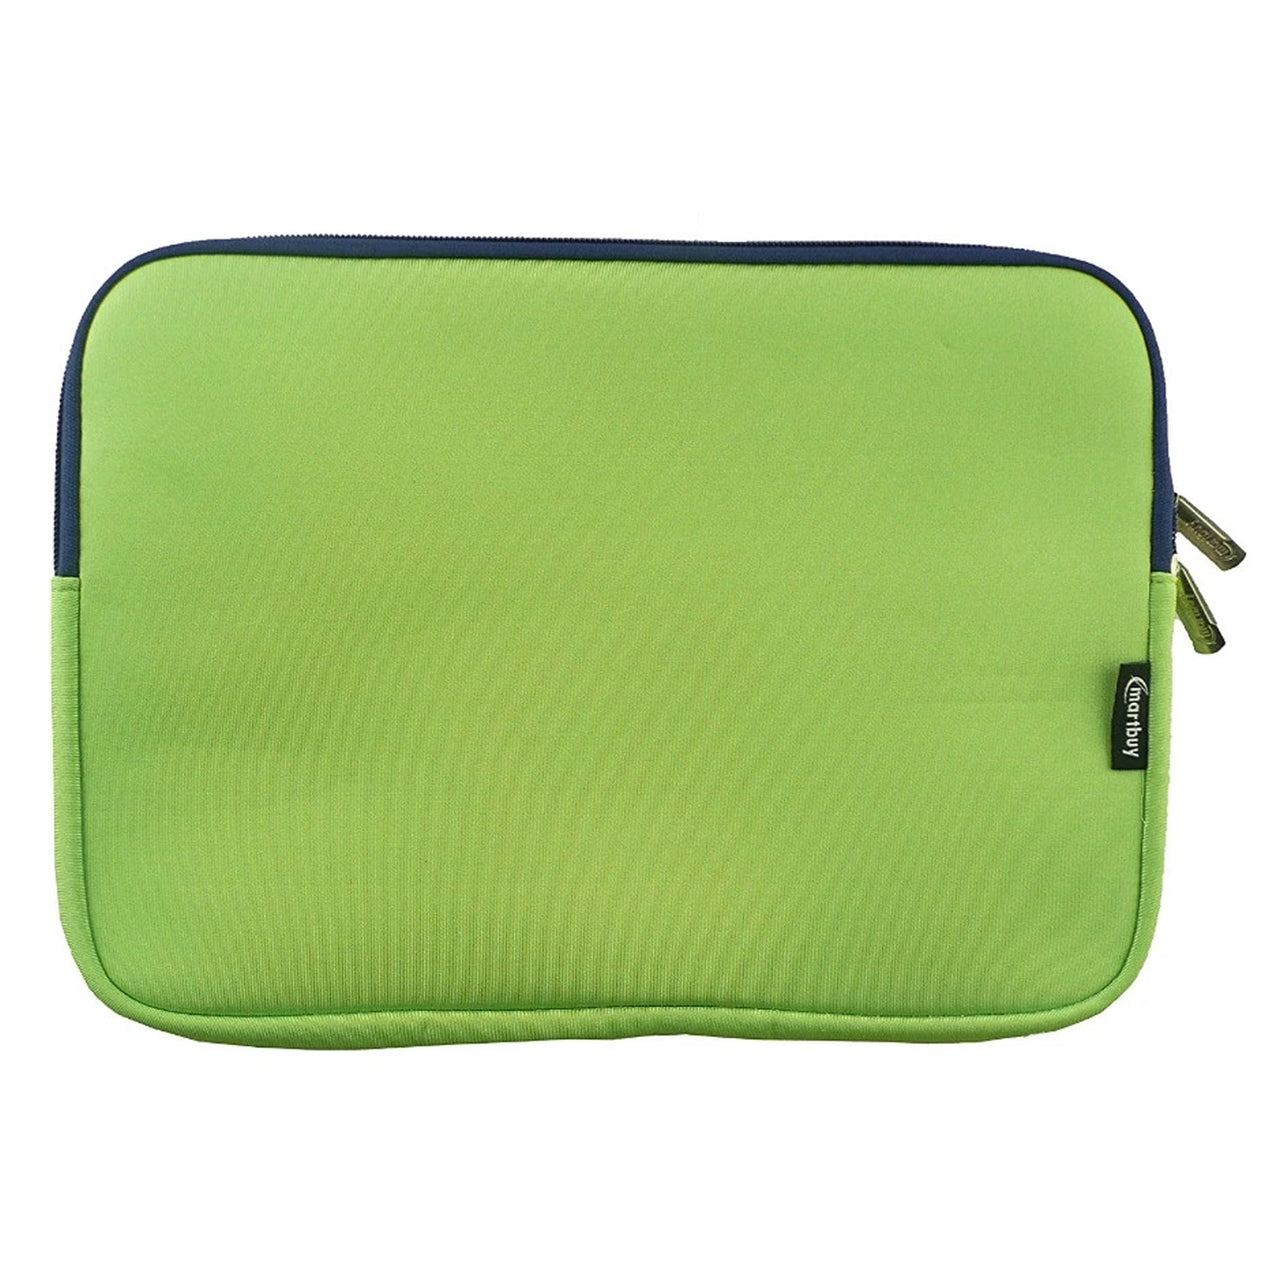 Universal Neoprene Case - Green Blue